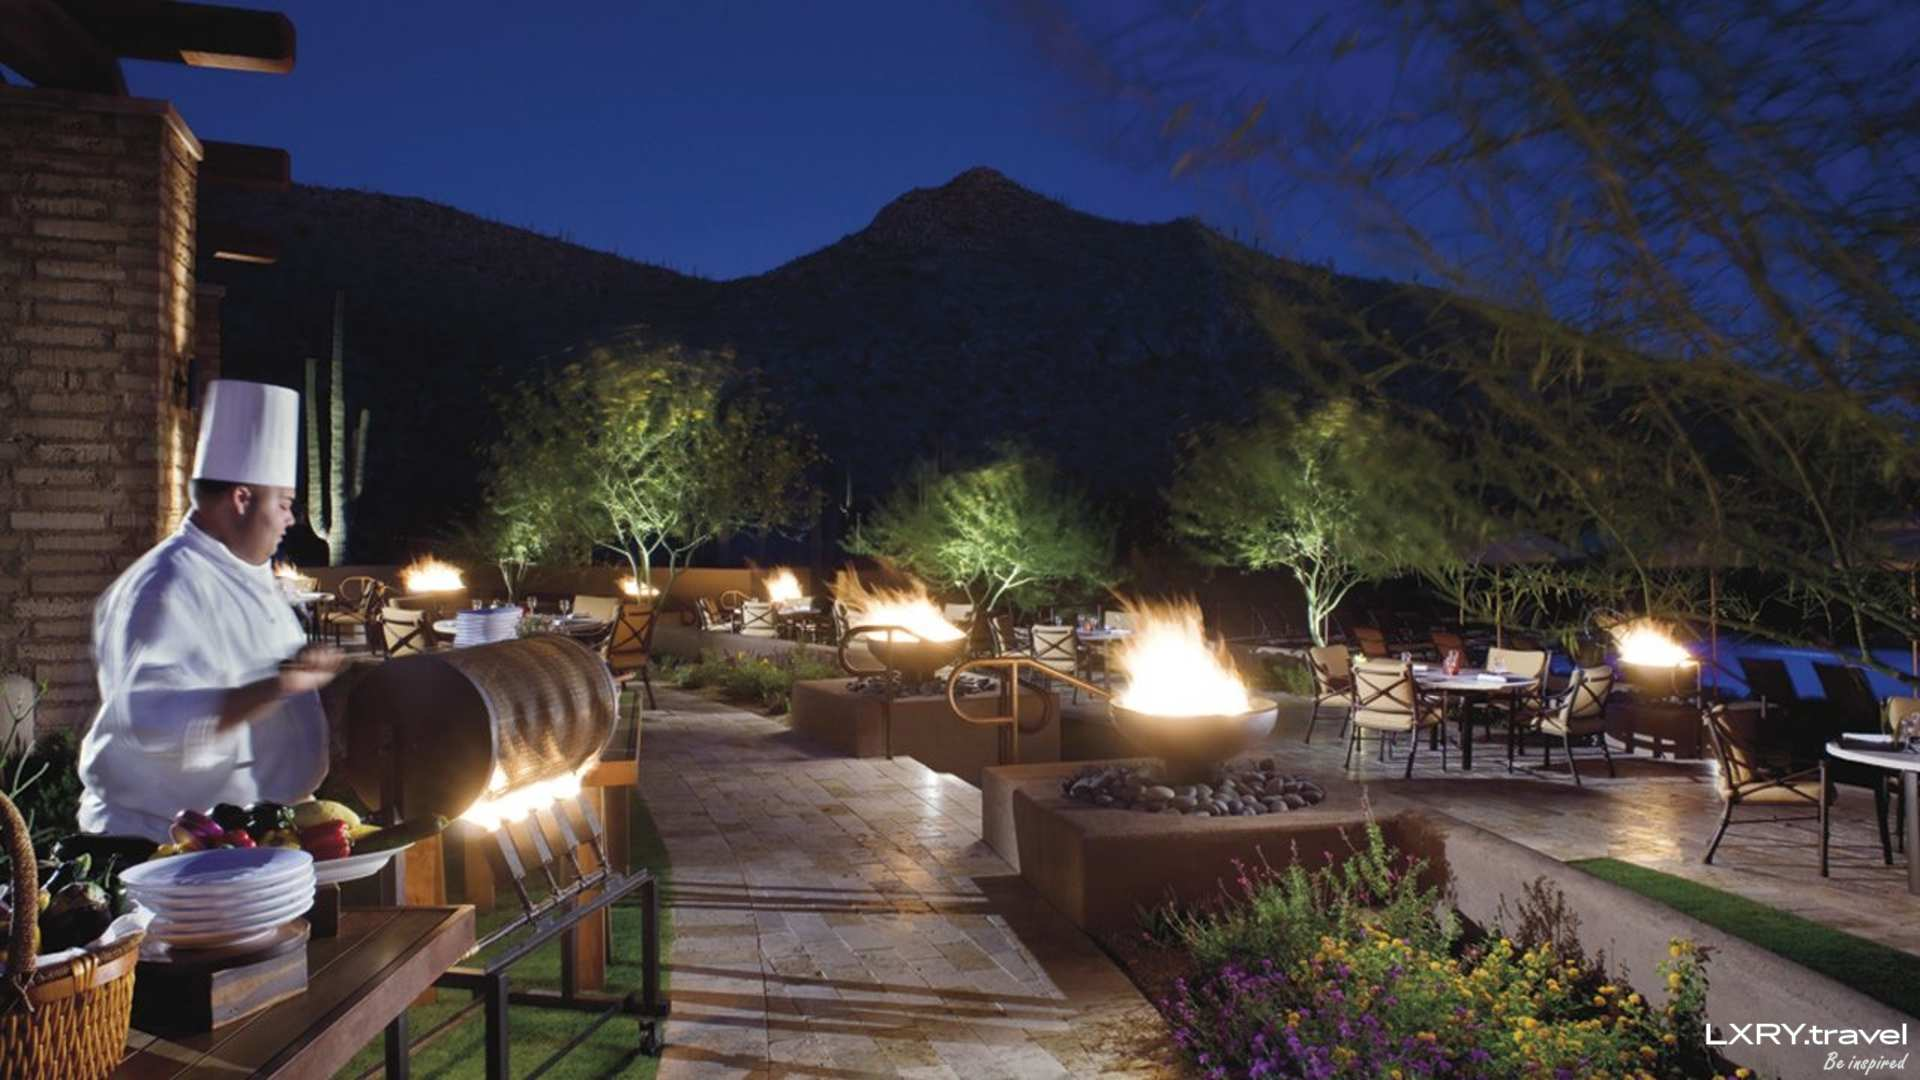 The Ritz-Carlton, Dove Mountain 24/56